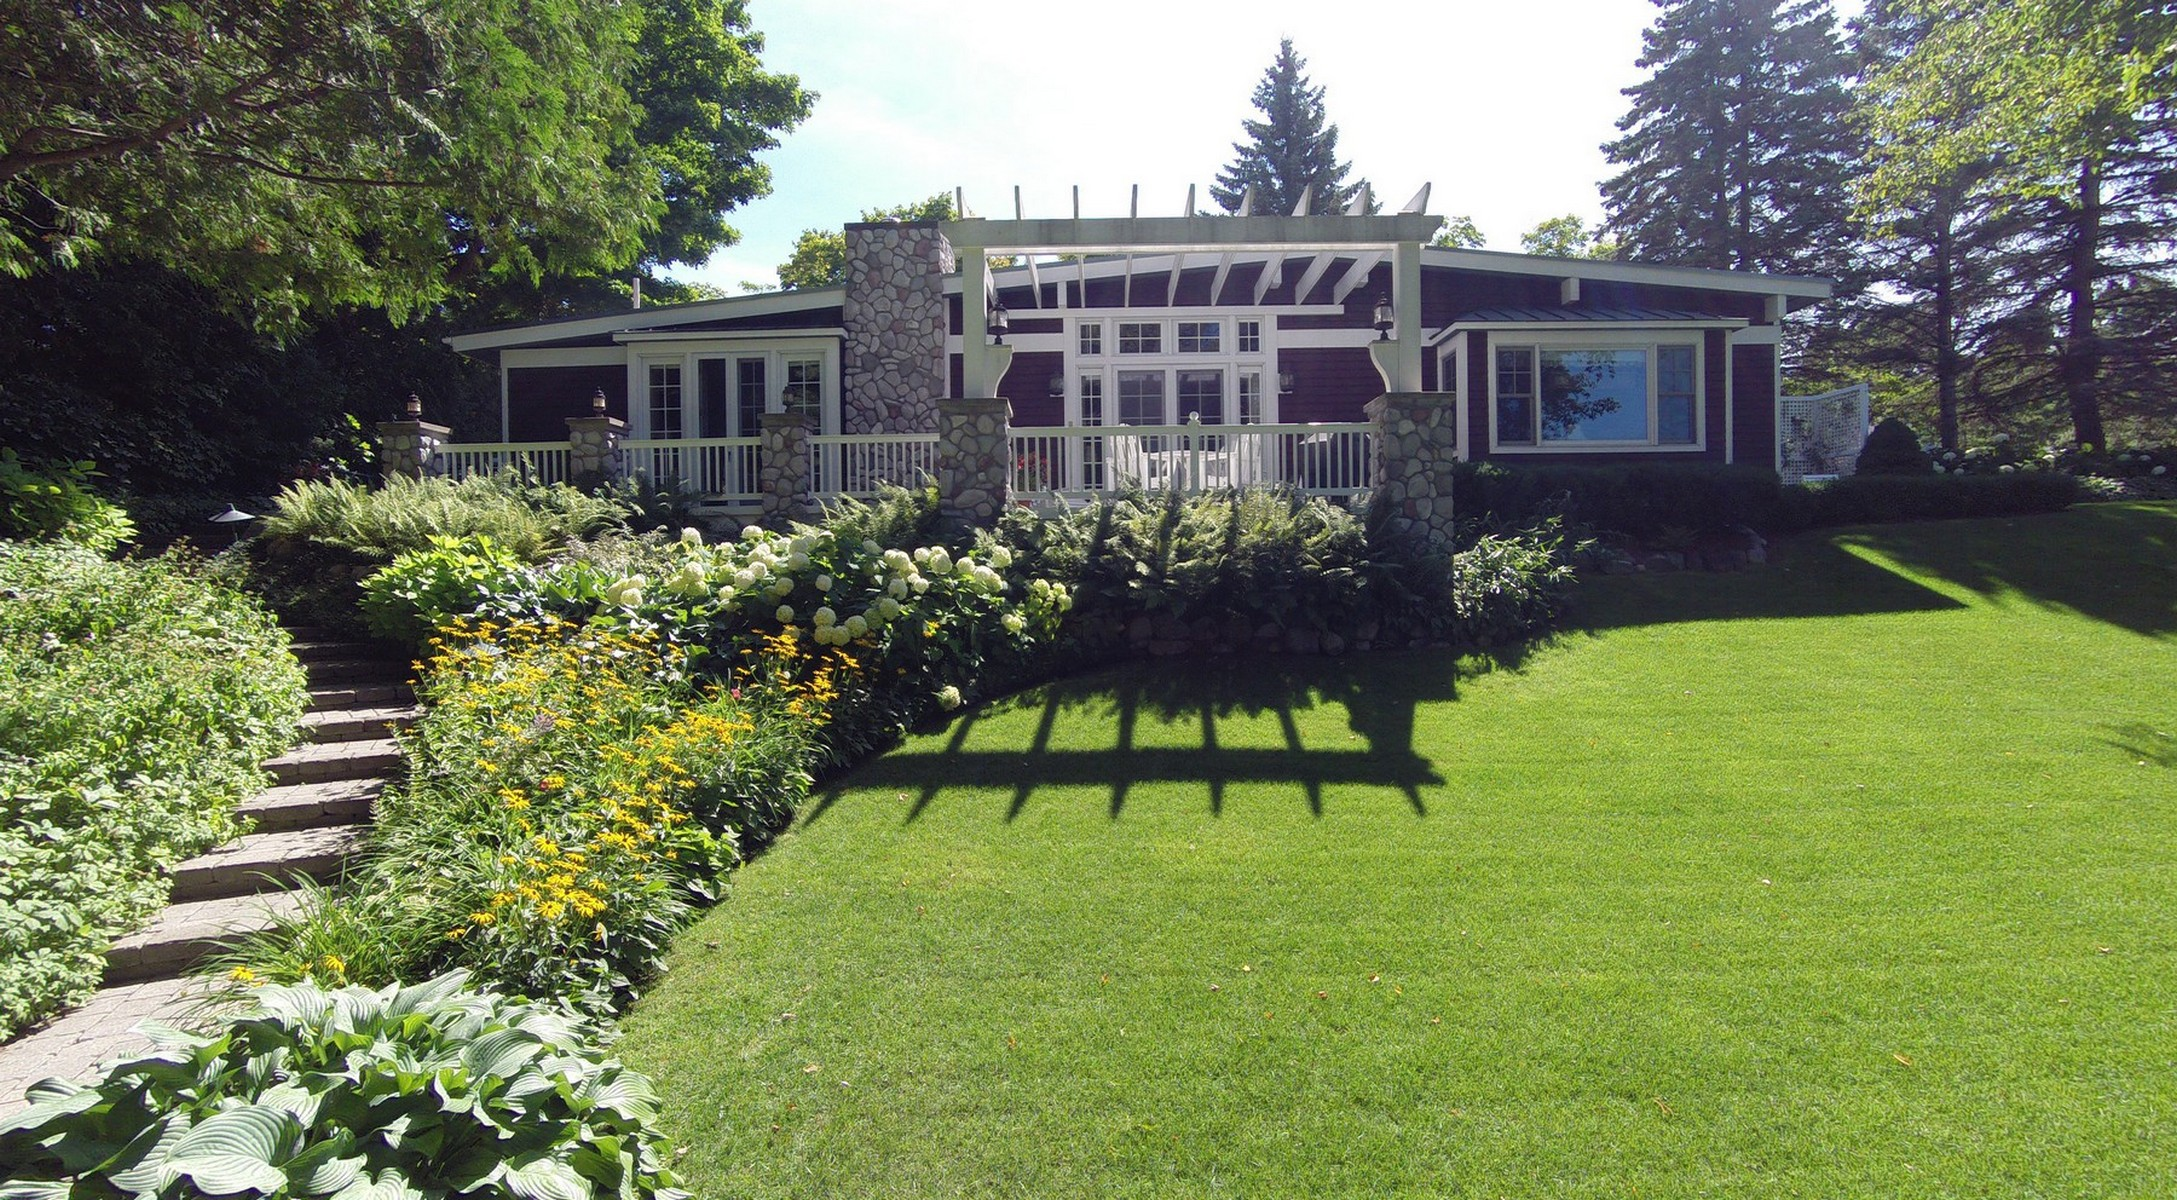 Other Residential for Sale at 313 & 315 Belvedere Avenue 313 Belvedere Avenue Charlevoix, Michigan, 49720 United States